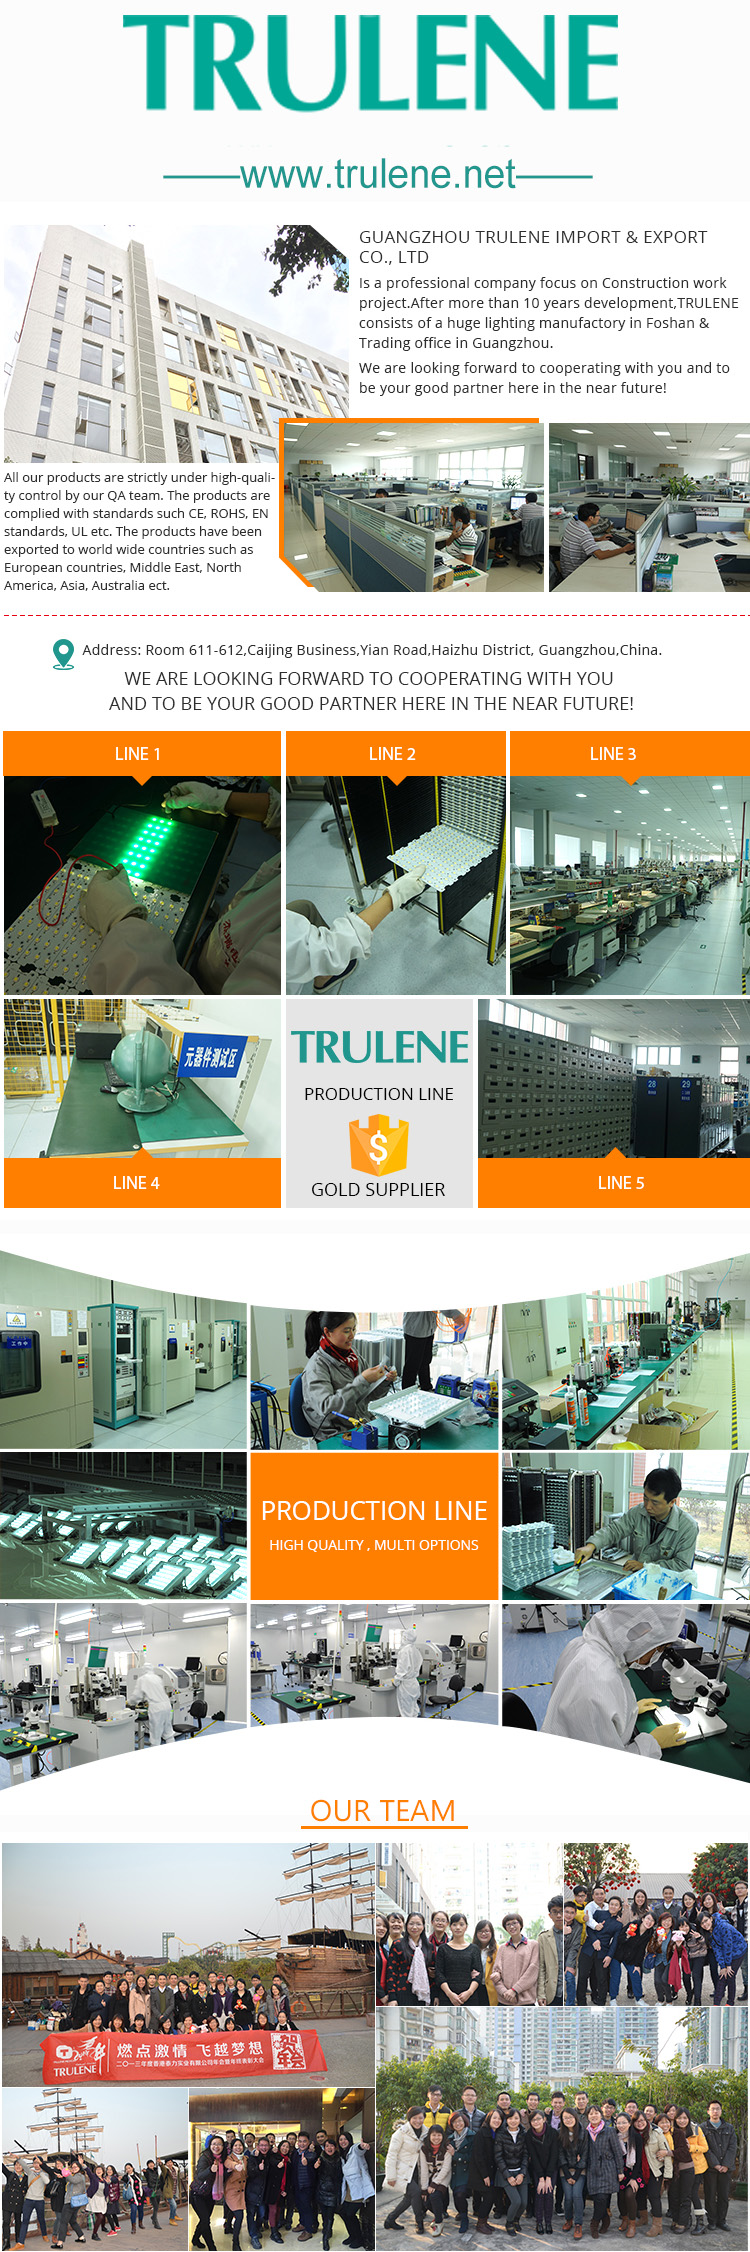 trulene led light